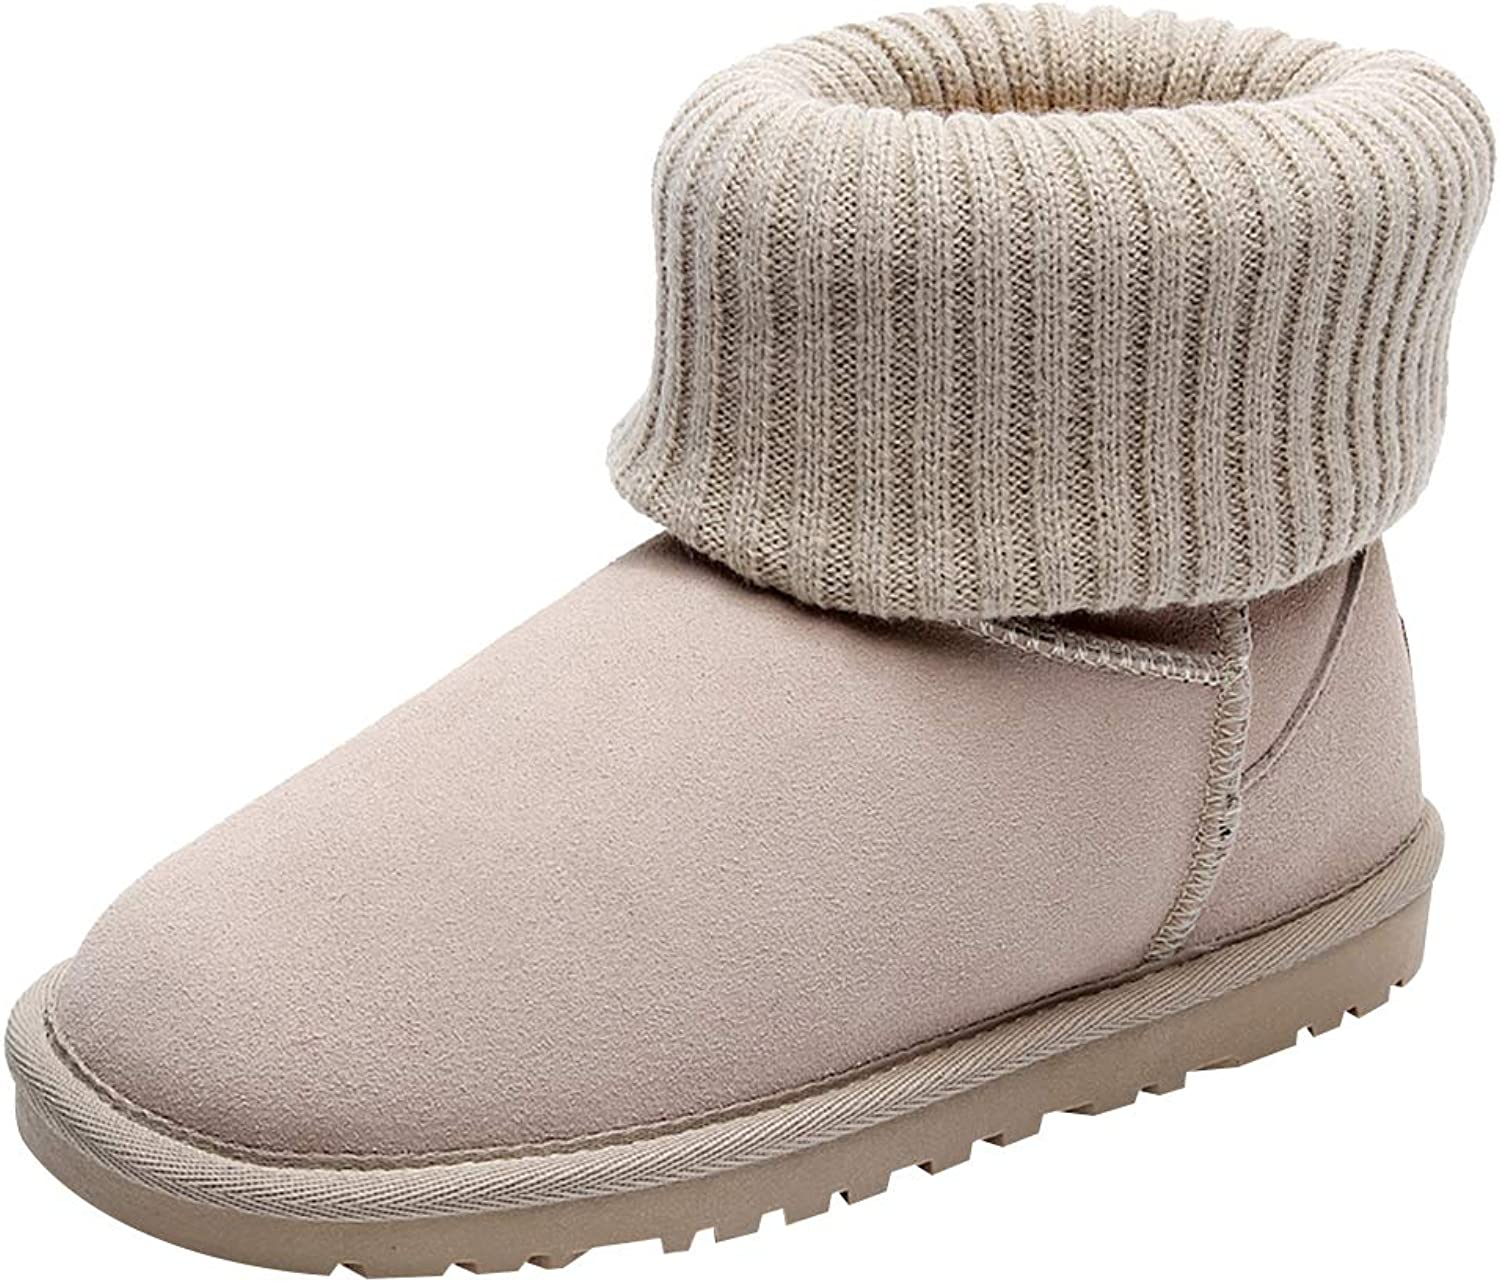 Rismart Girls' Kids' Ankle High Knitting Plush Lined Warmth Soft Snow Boots